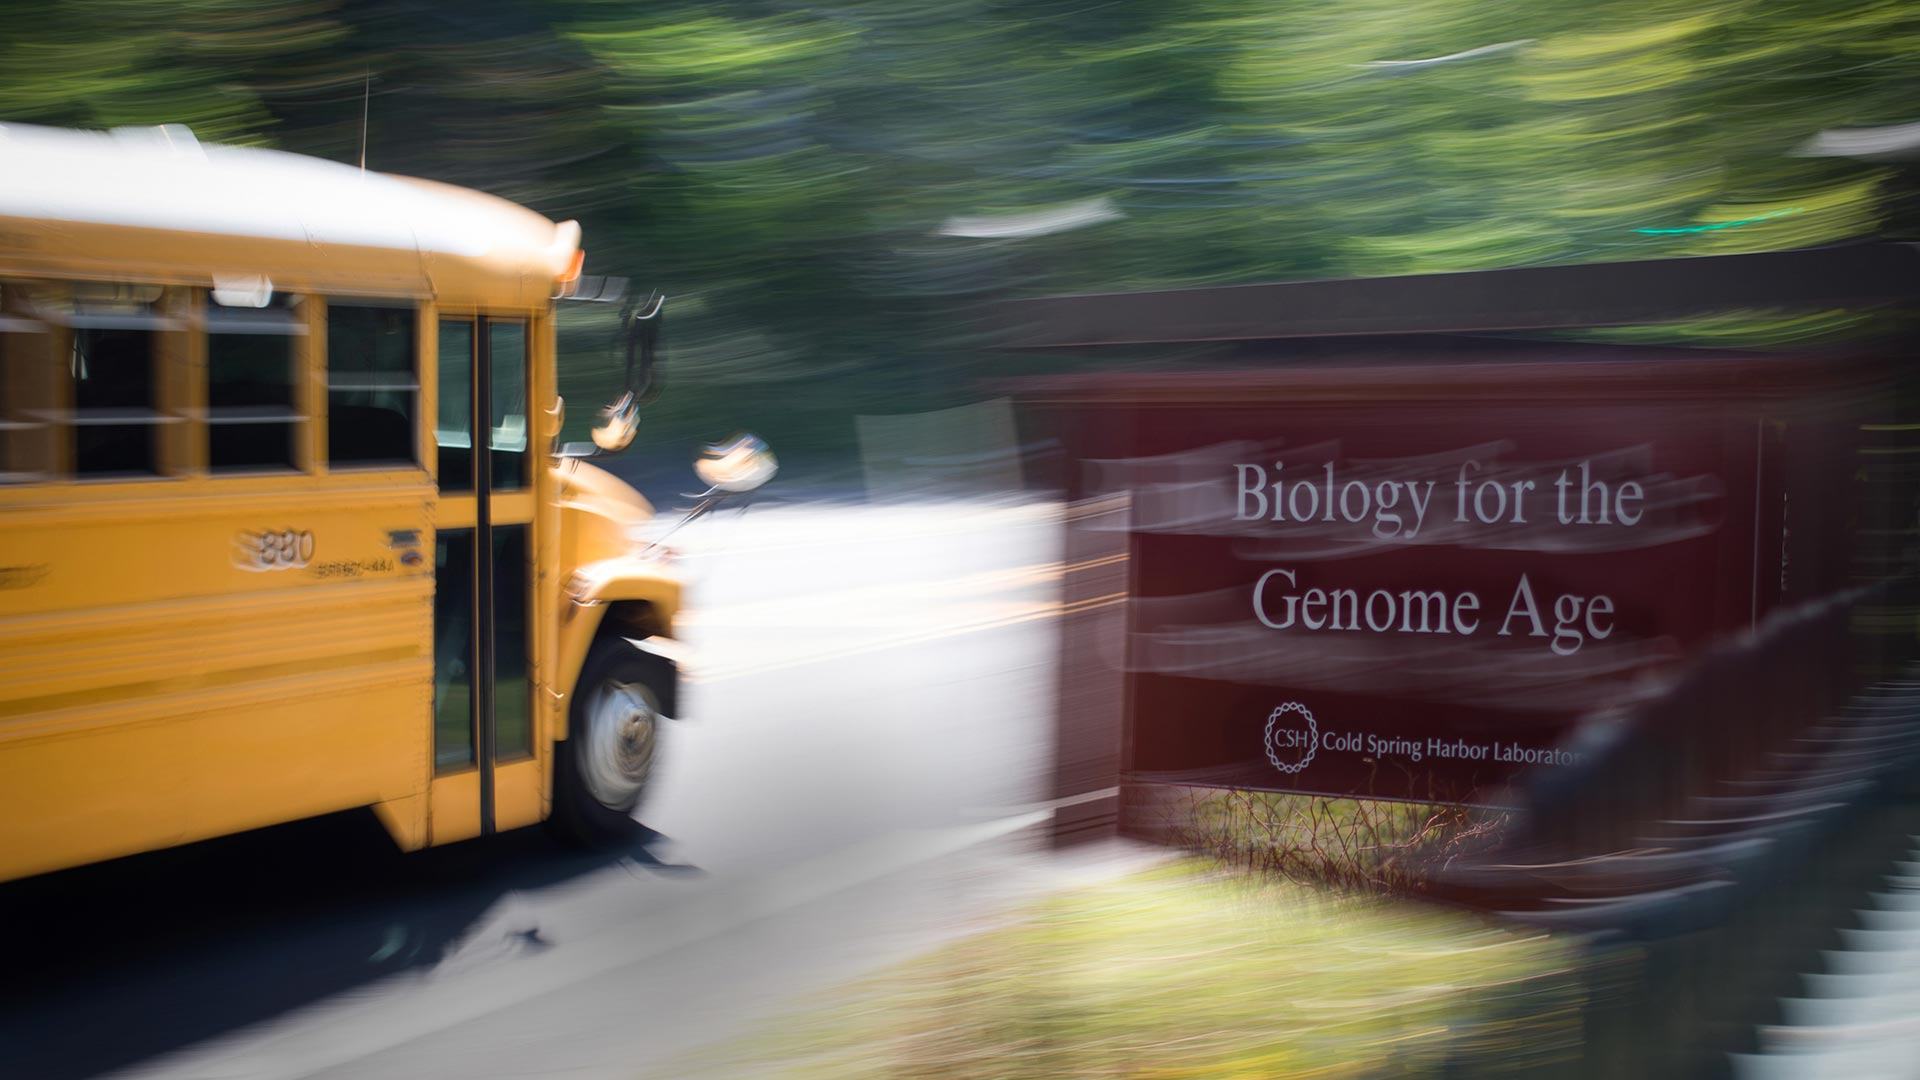 photo of a school bus passing the CSHL sign